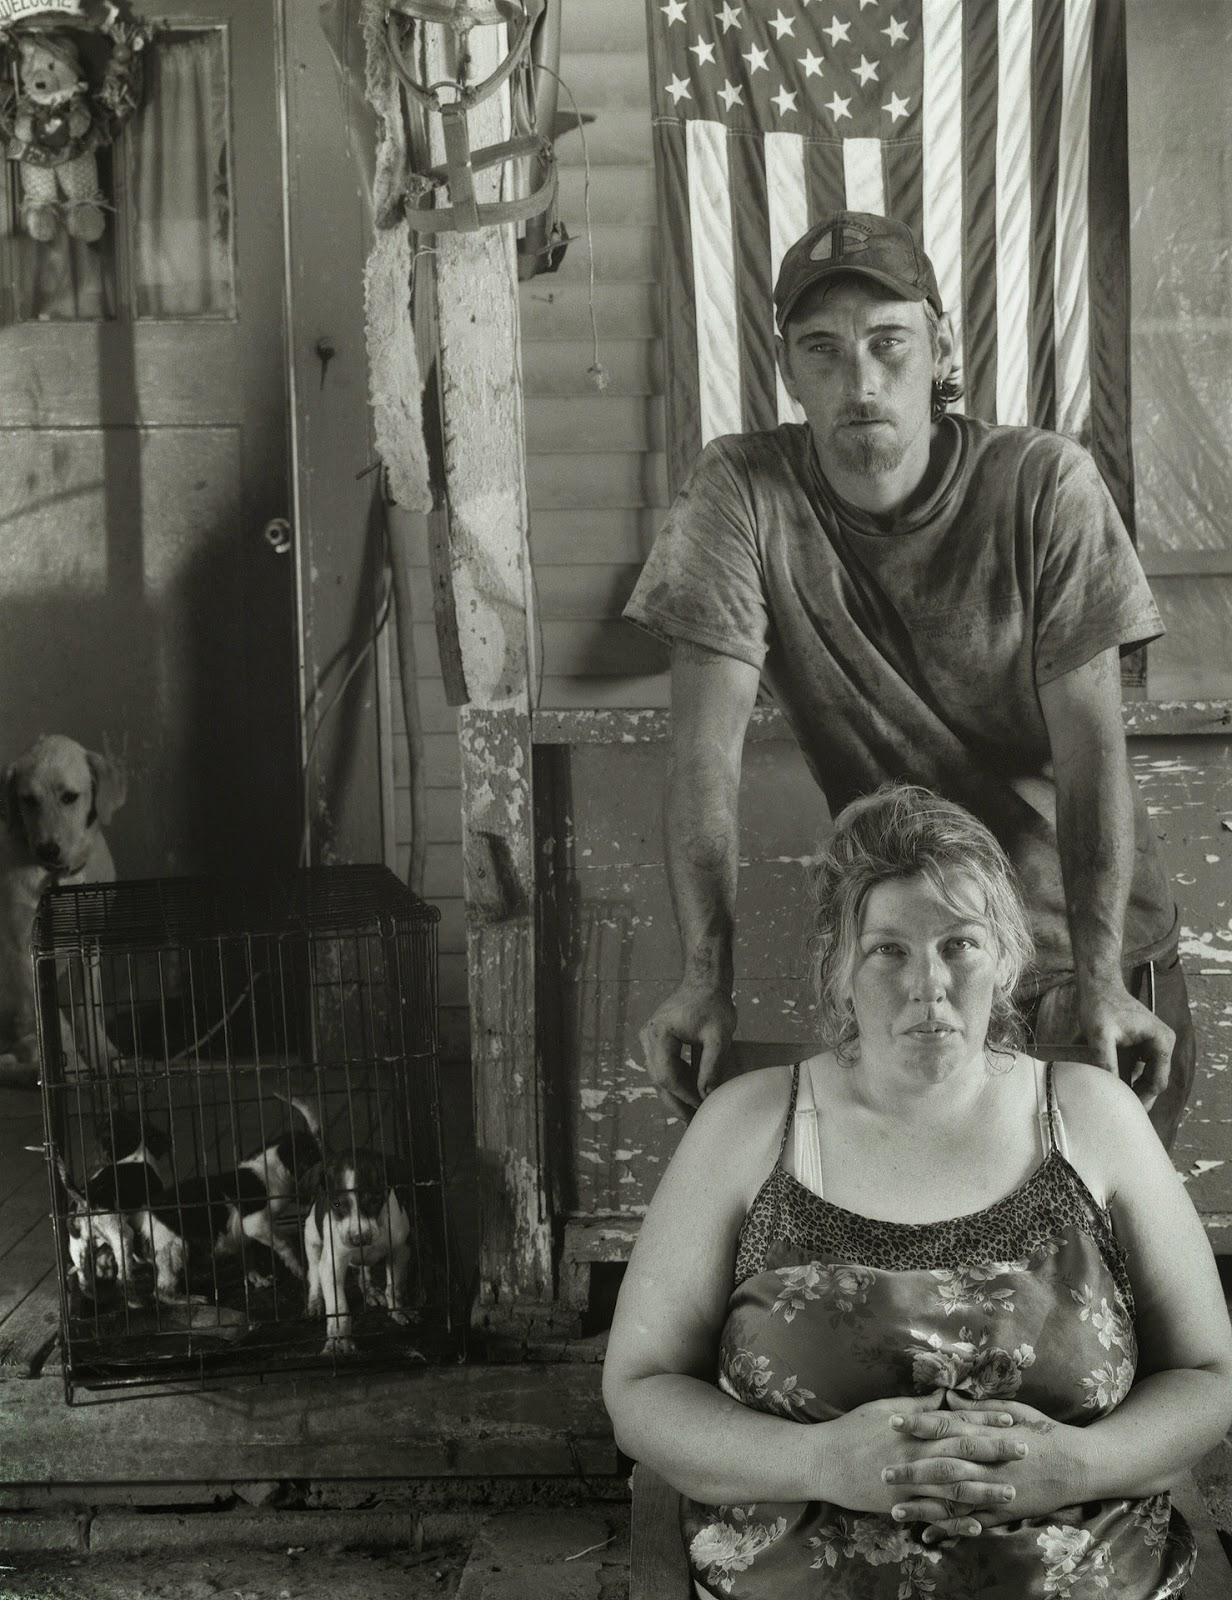 Two Days in Appalachia: Photography or Poverty Porn?